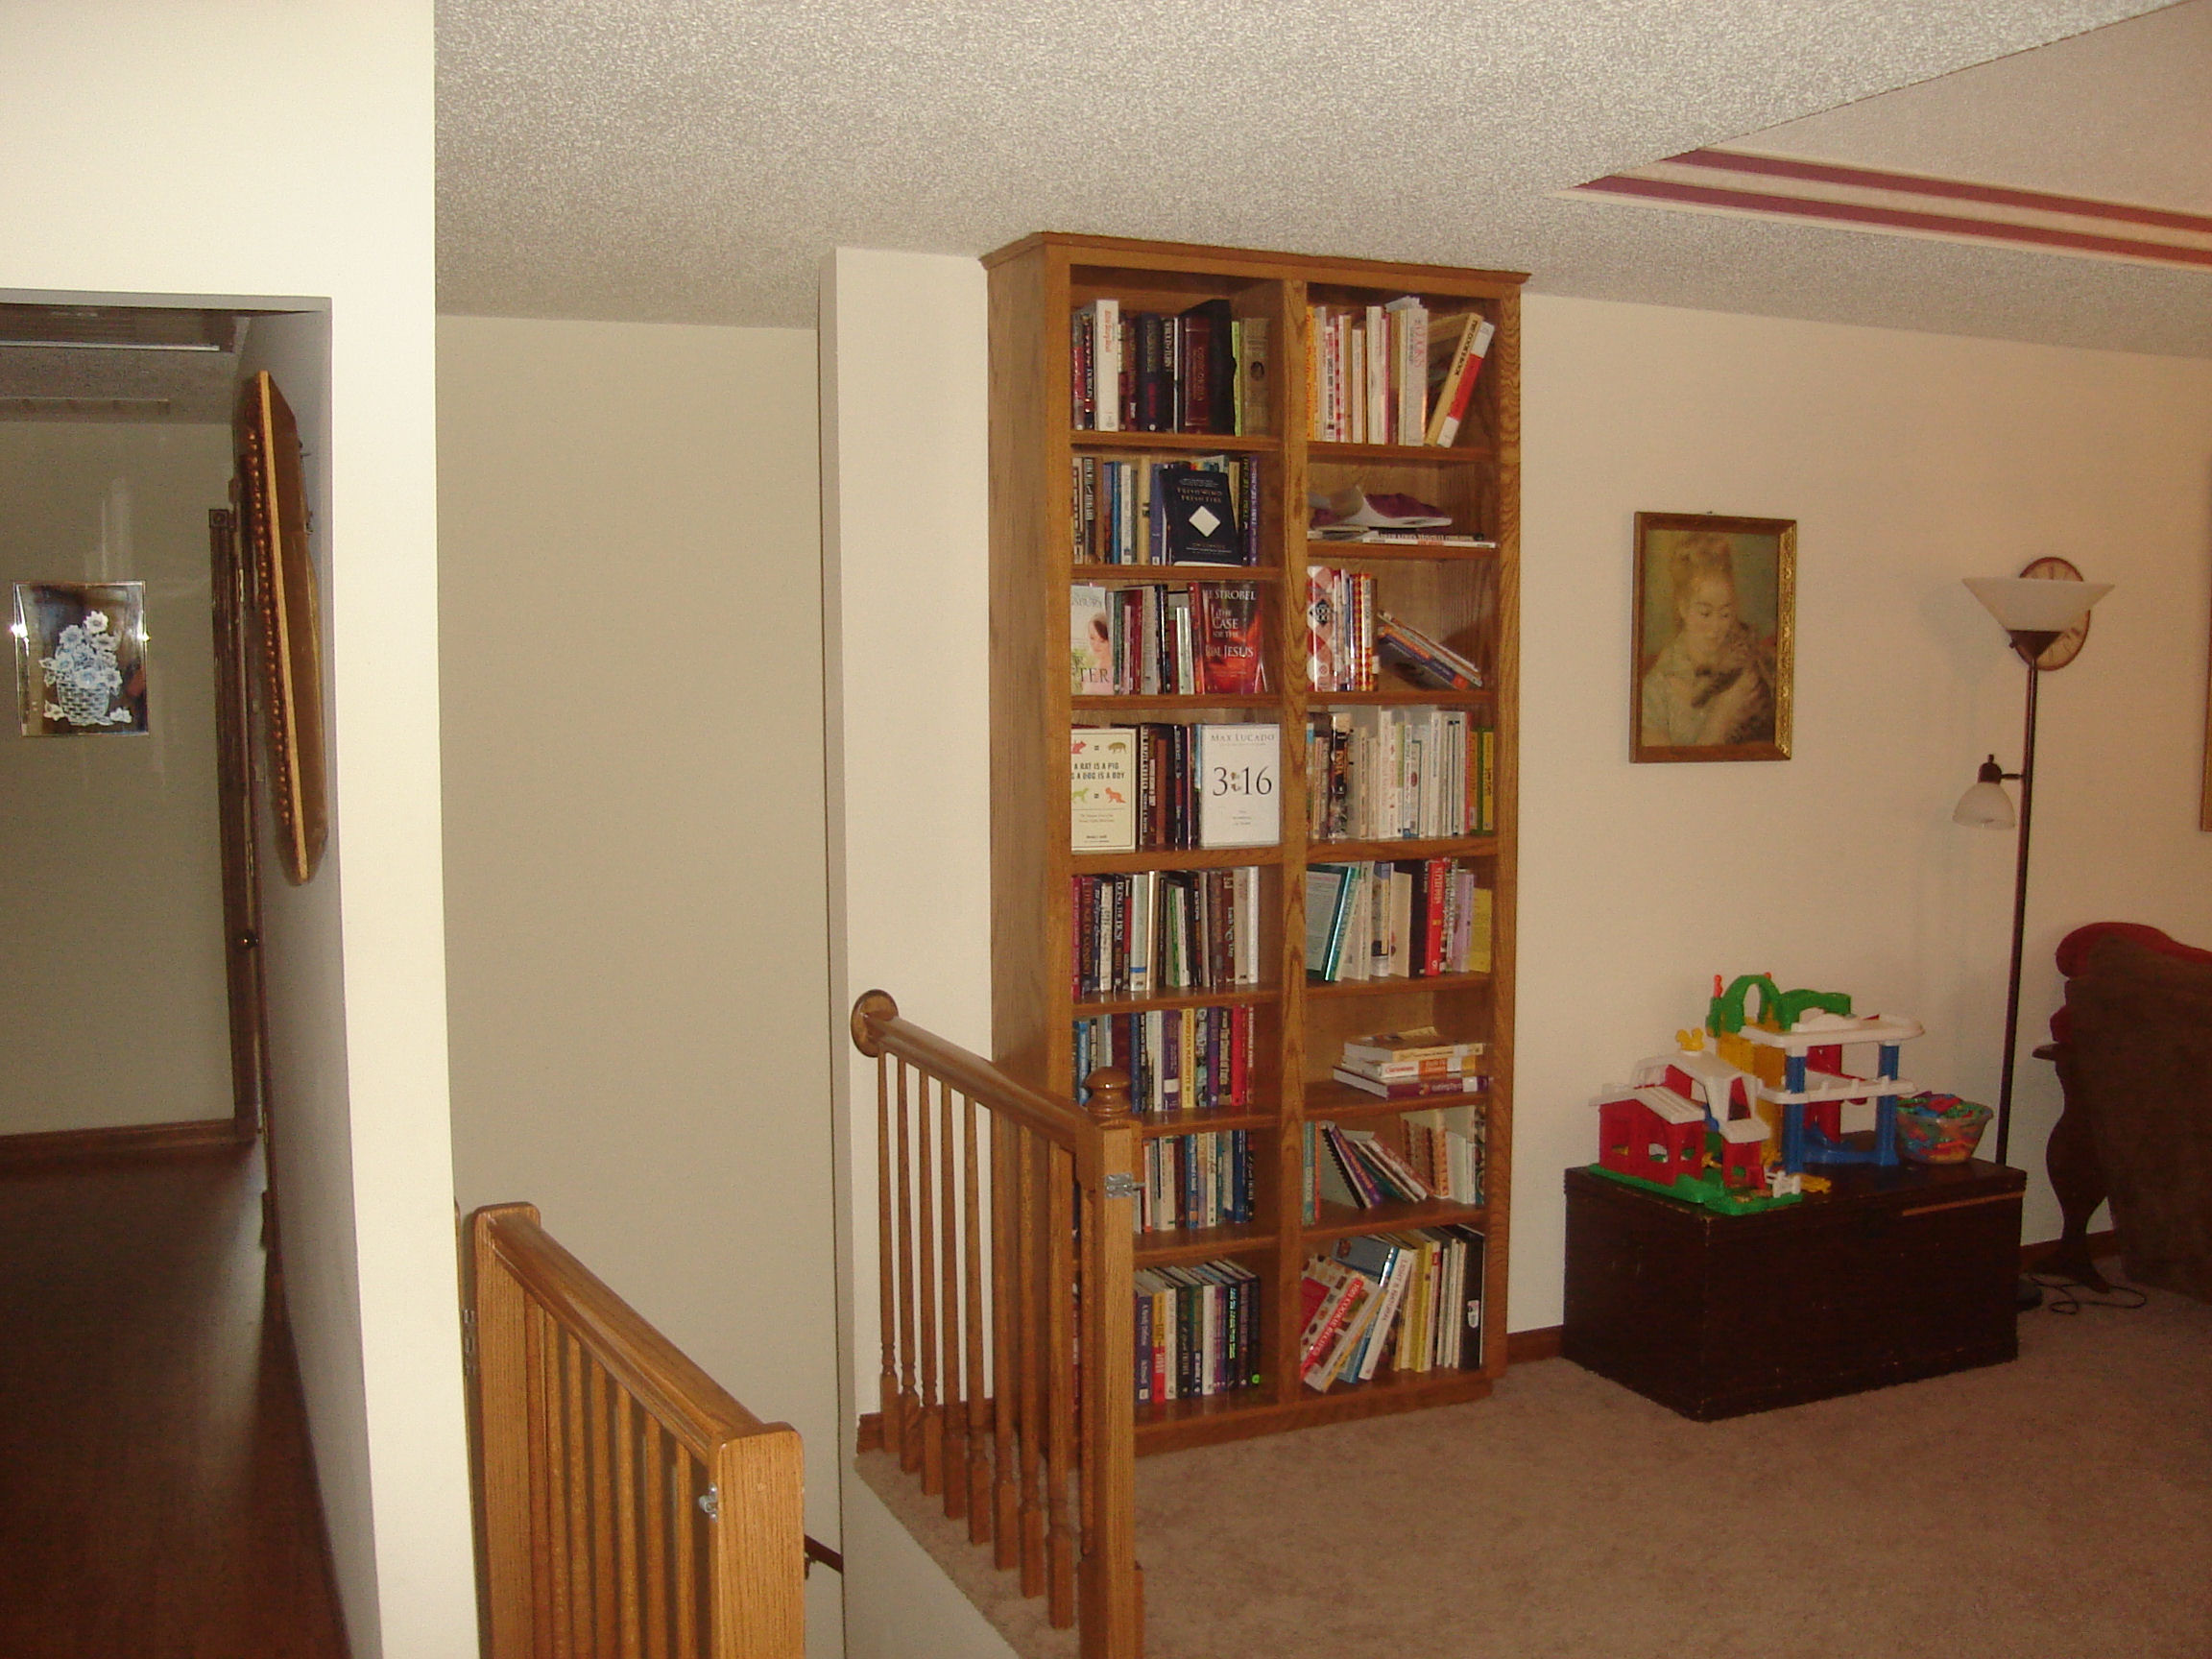 The built-in bookshelves